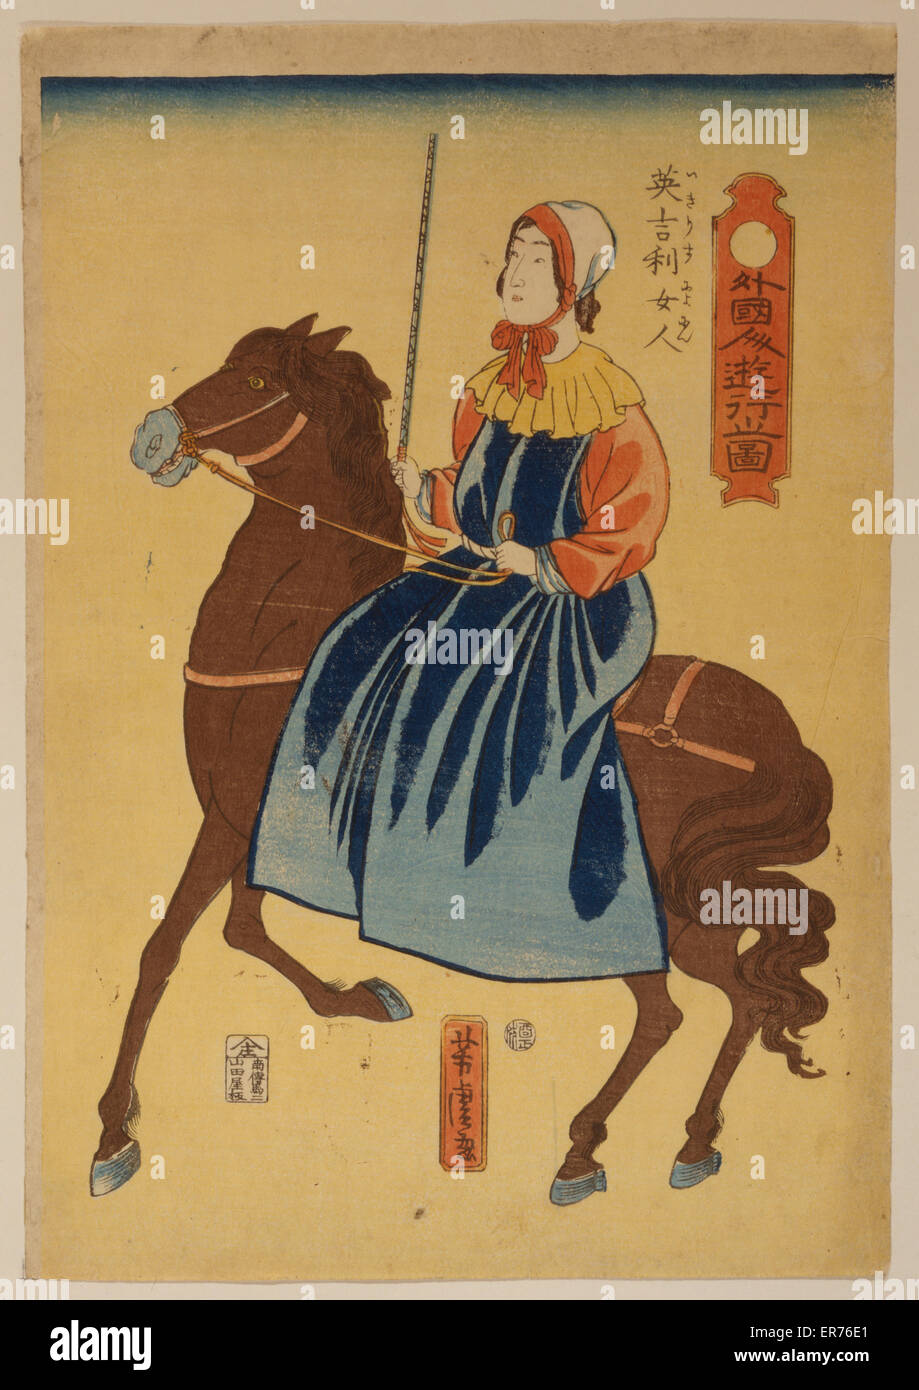 Foreigners enjoying themselves - English woman. Japanese print shows a woman riding sidesaddle. Date 1861. - Stock Image